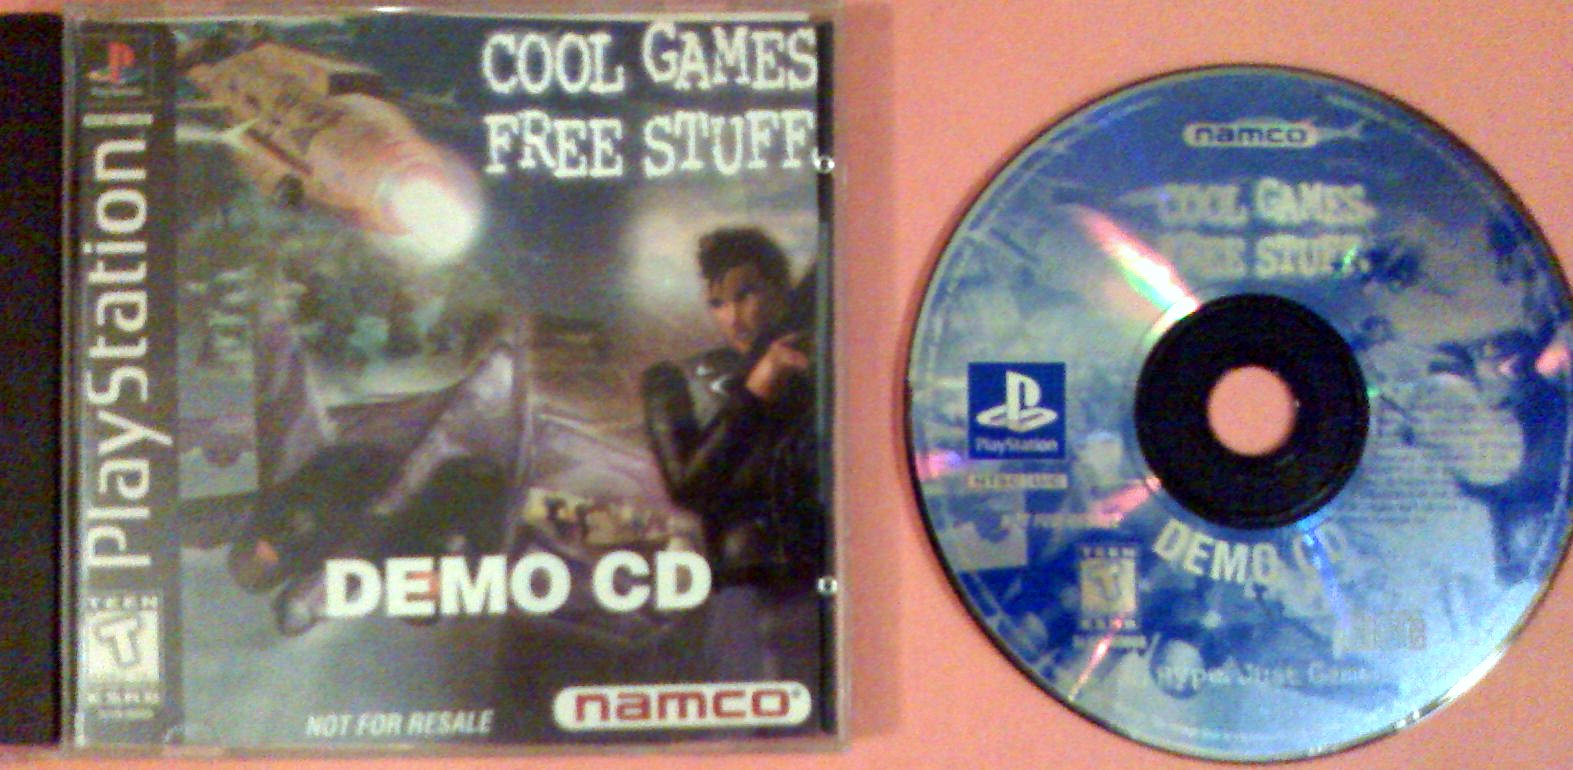 Cool Games For Free : Cool games free stuff namco demo disk